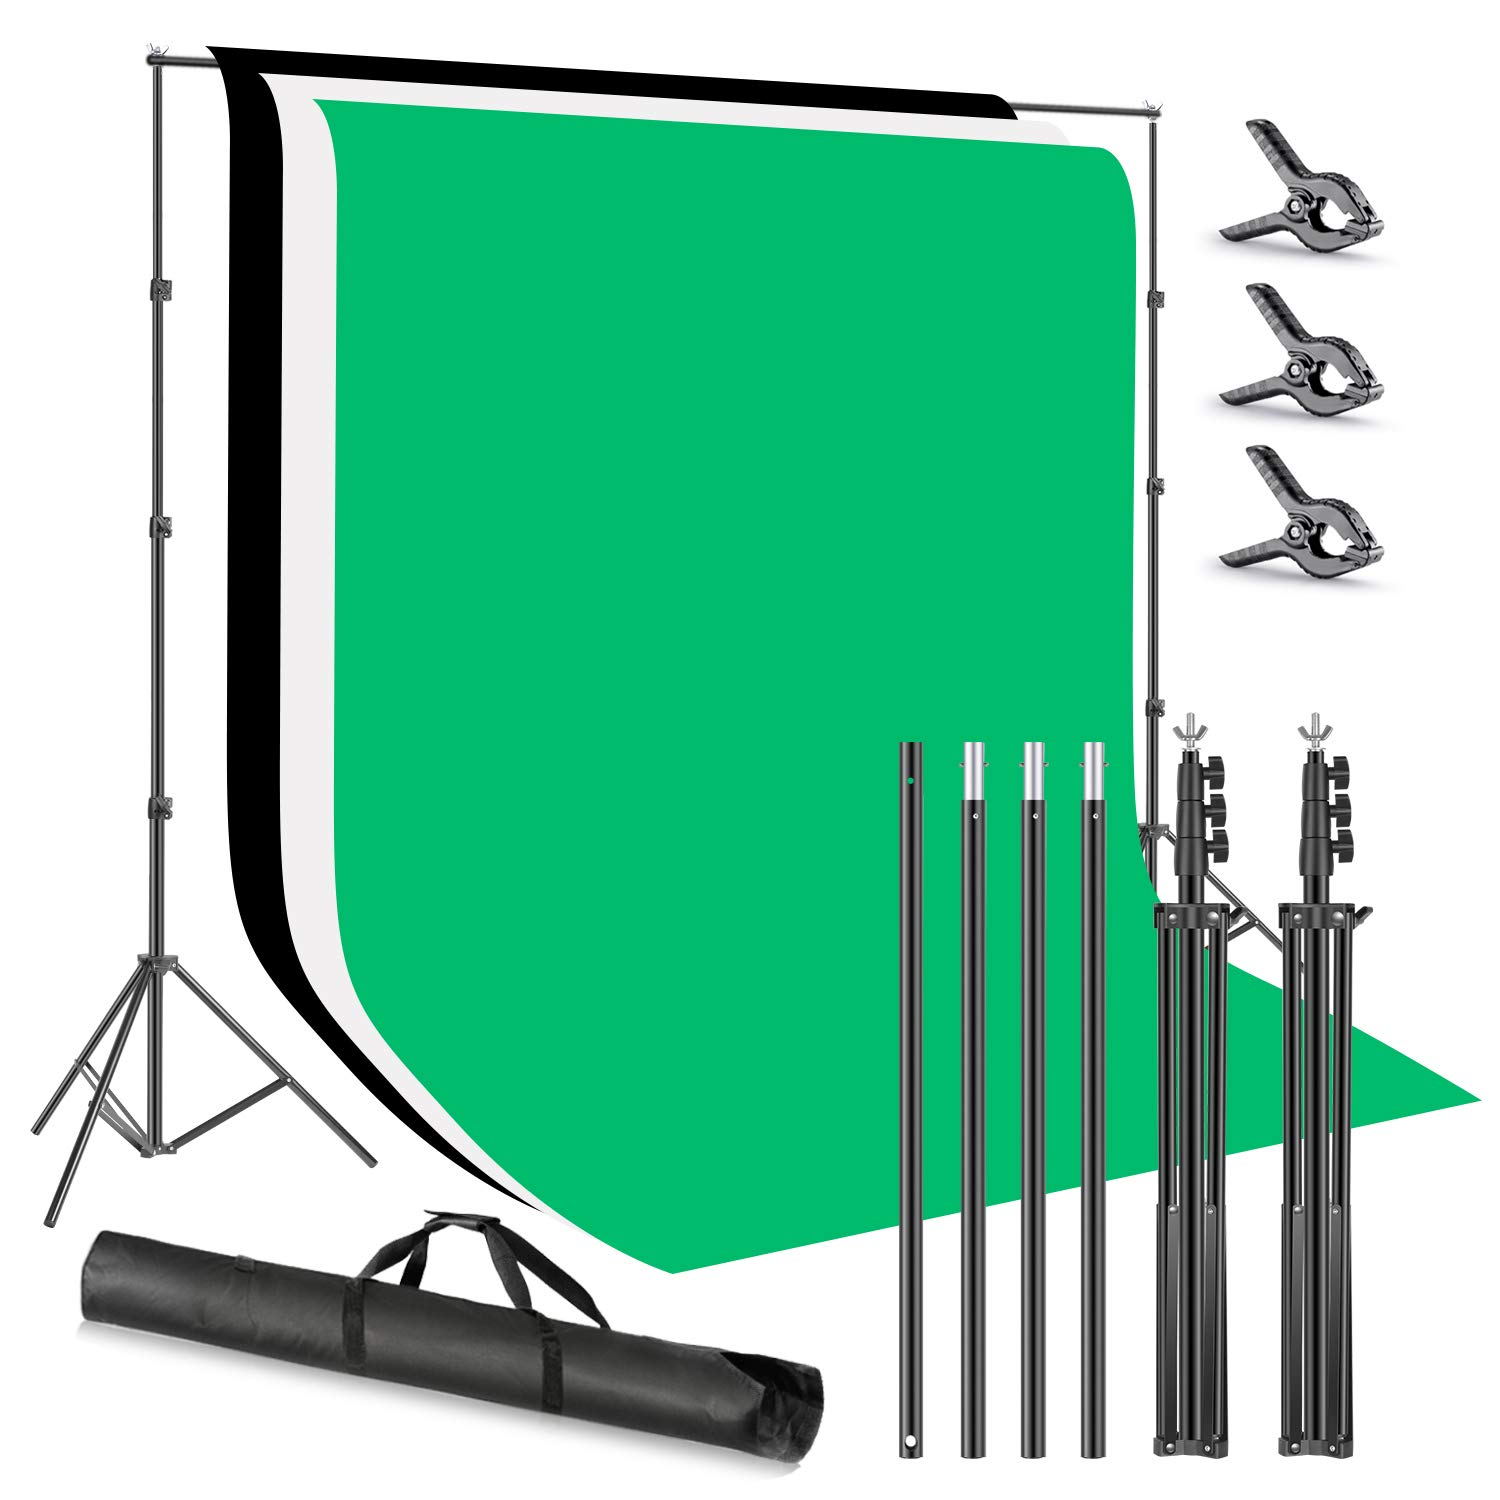 Neewer Photo Studio 8.5x9.8feet Backdrop Stand Backdrop Support System with 6x9feet Polyester Backdrop (White/Black/Green) Clamps and Carry Bag for Photography (Perfect for Freshman/Beginners) by Neewer